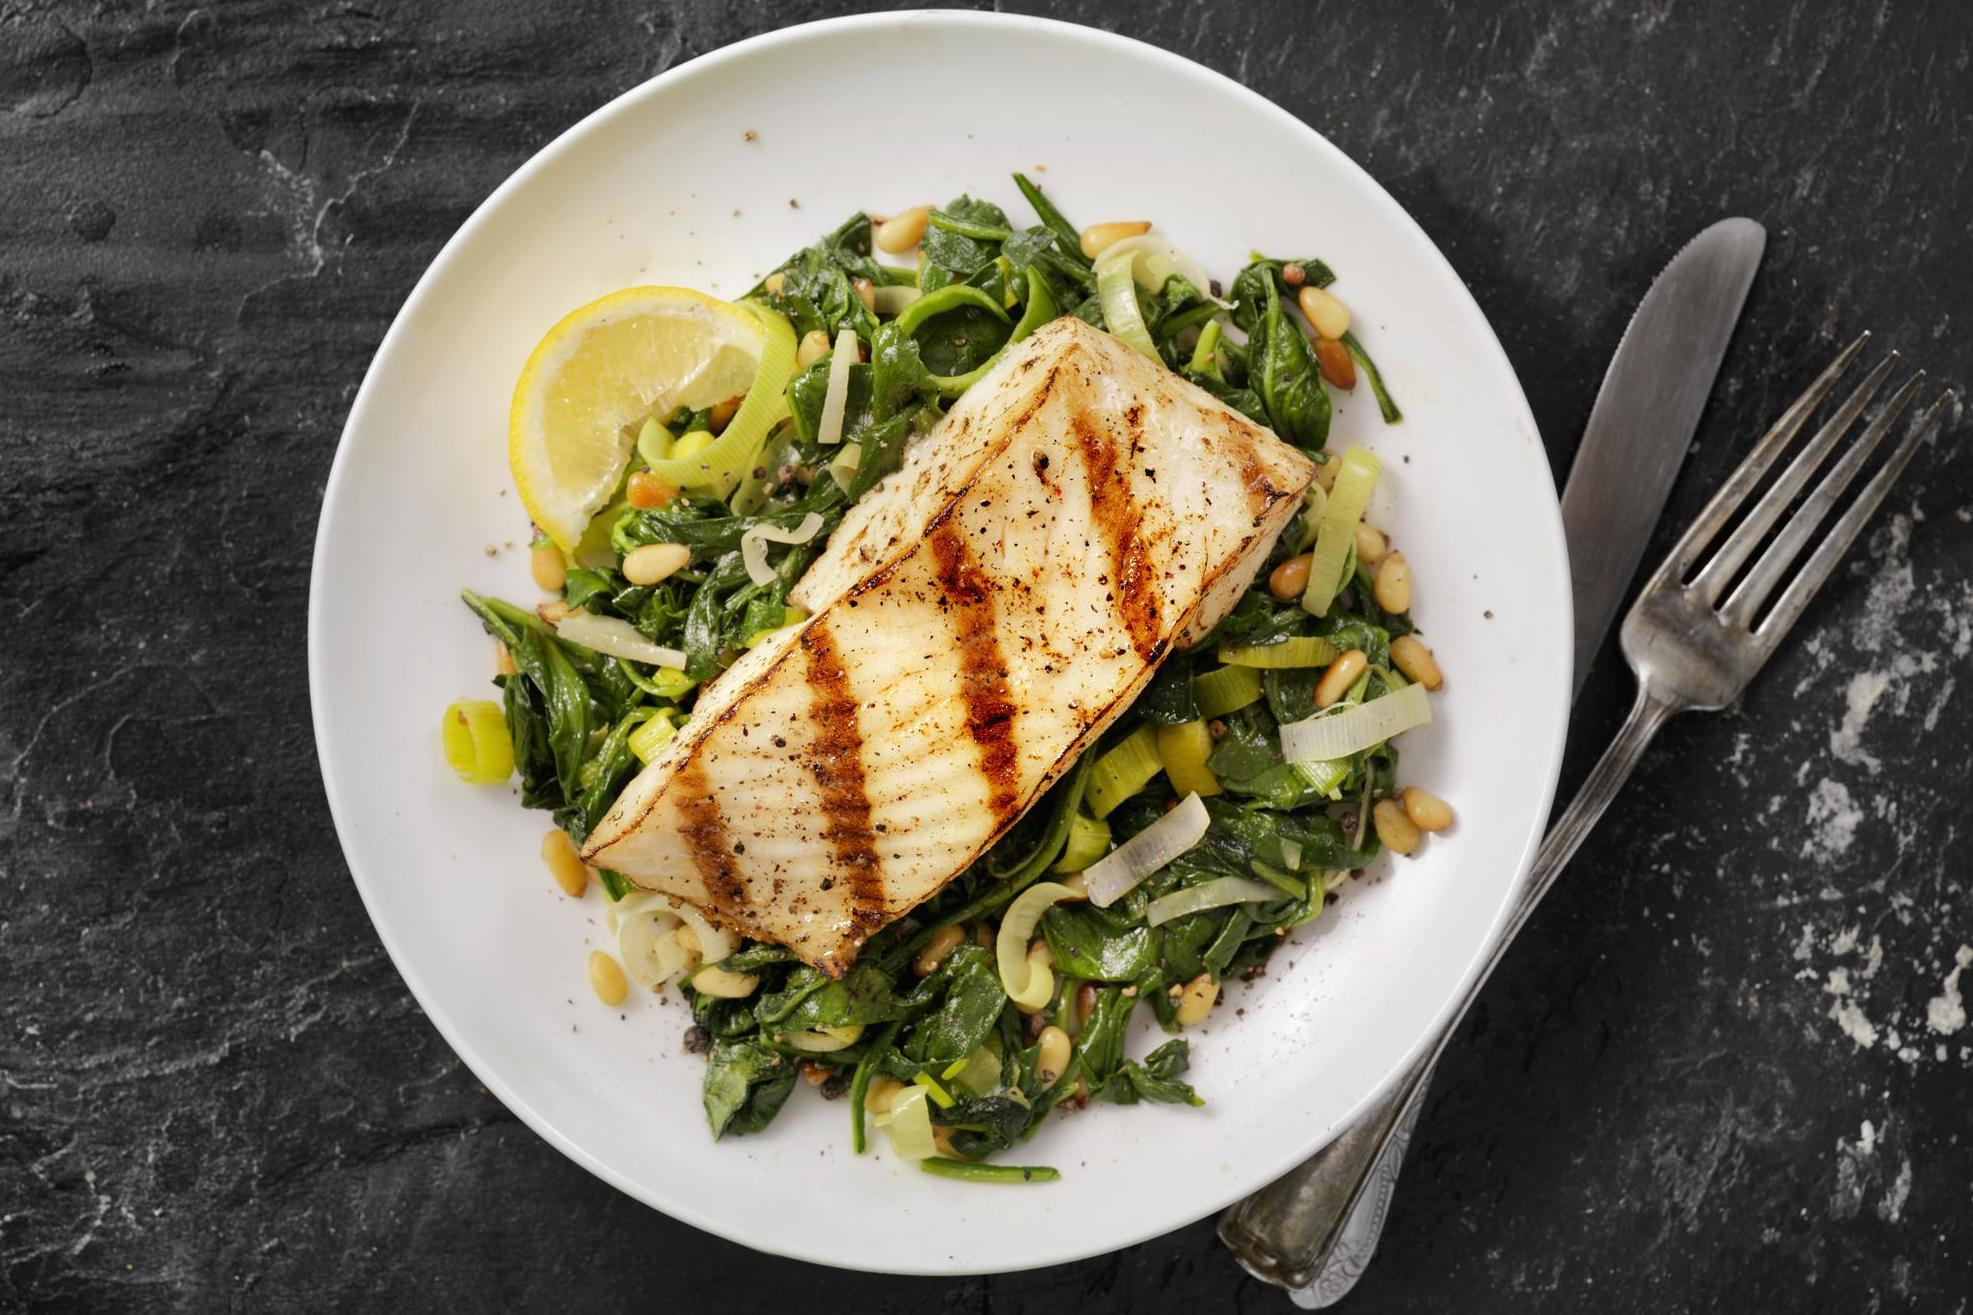 Eating Three Portions Of Fish A Week Reduces Risk Of Bowel Cancer The Independent The Independent